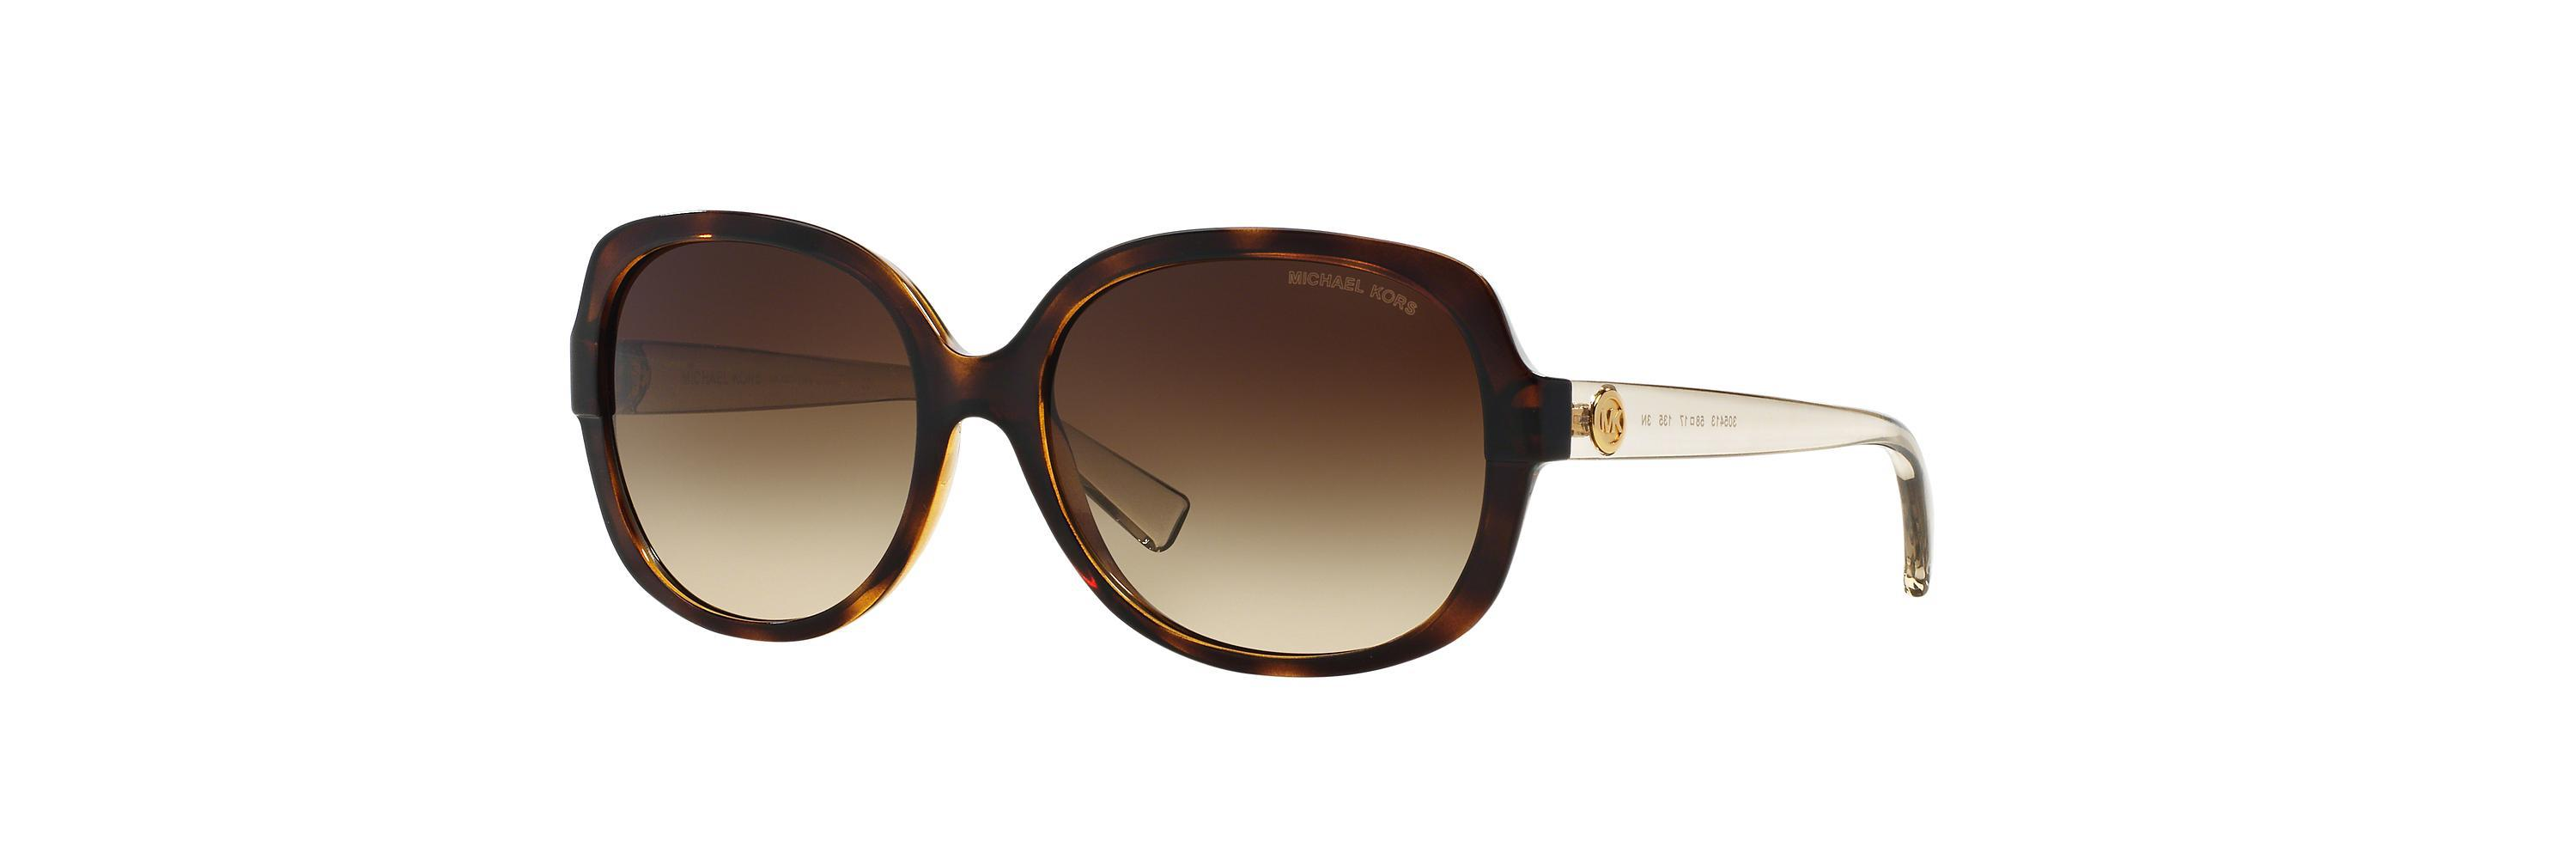 5637549aac Gallery. Previously sold at  Sunglass Hut · Women s Michael Kors Charm  Women s Leopard Sunglasses ...